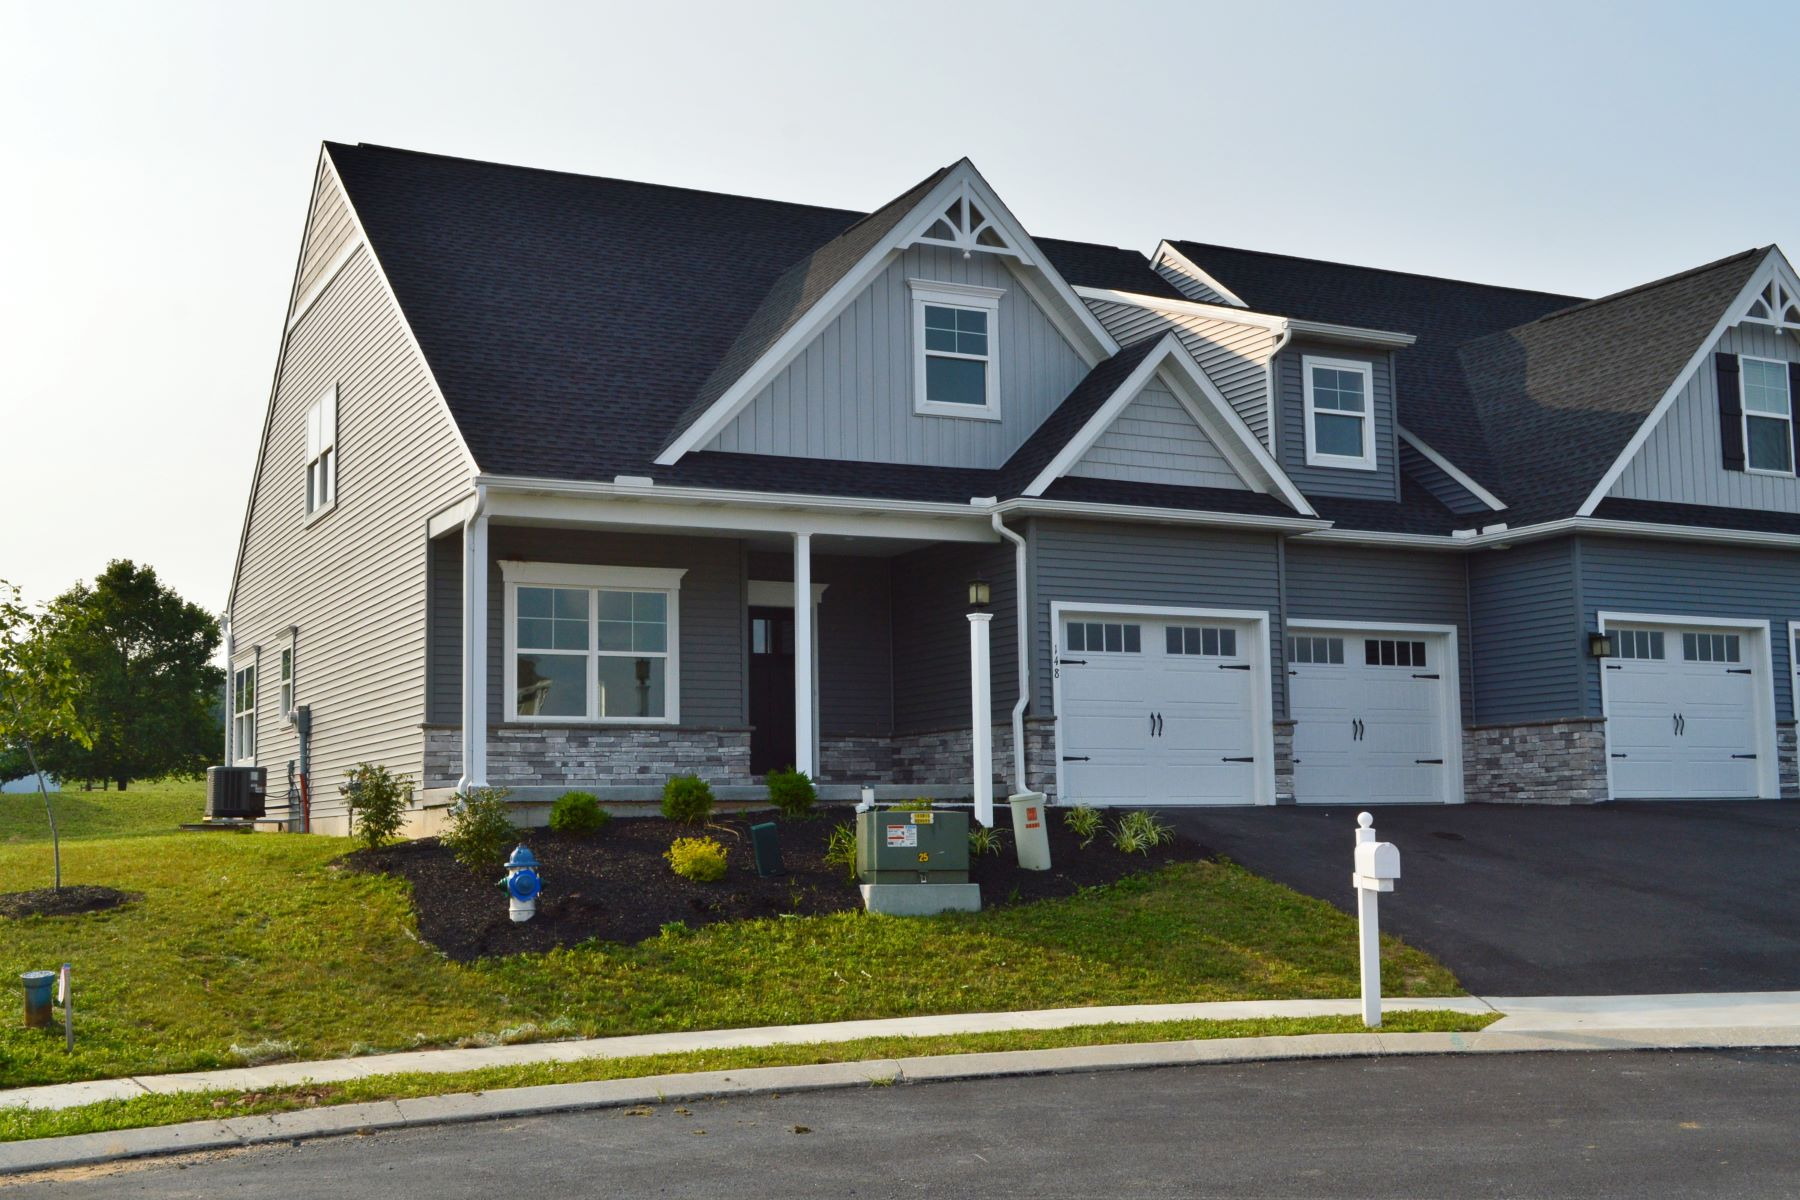 Single Family Homes for Sale at Featherton Crossing 148 Canvasback Lane Lot 20 Elizabethtown, Pennsylvania 17022 United States